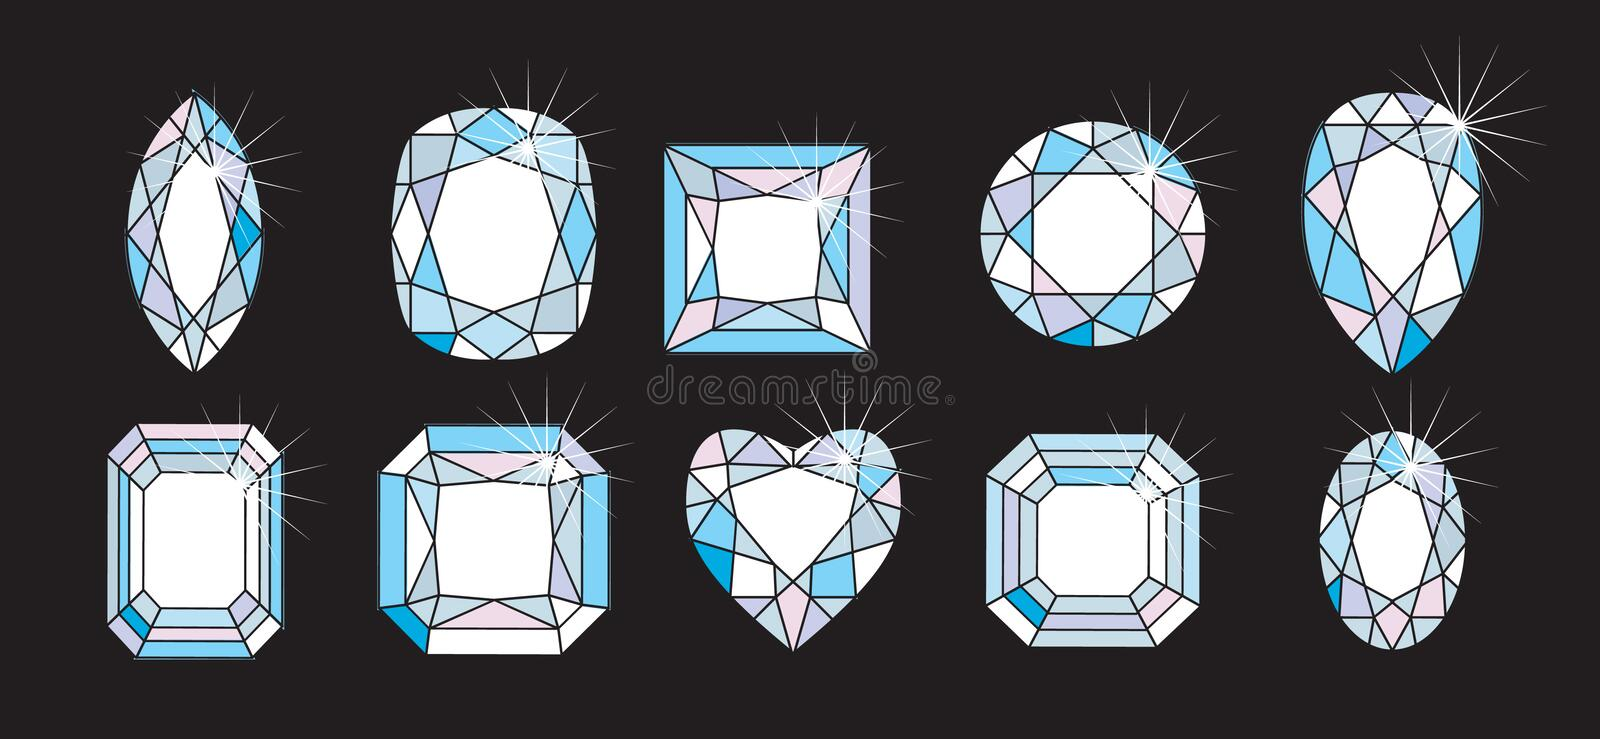 Diamond Cuts and shapes vector illustration